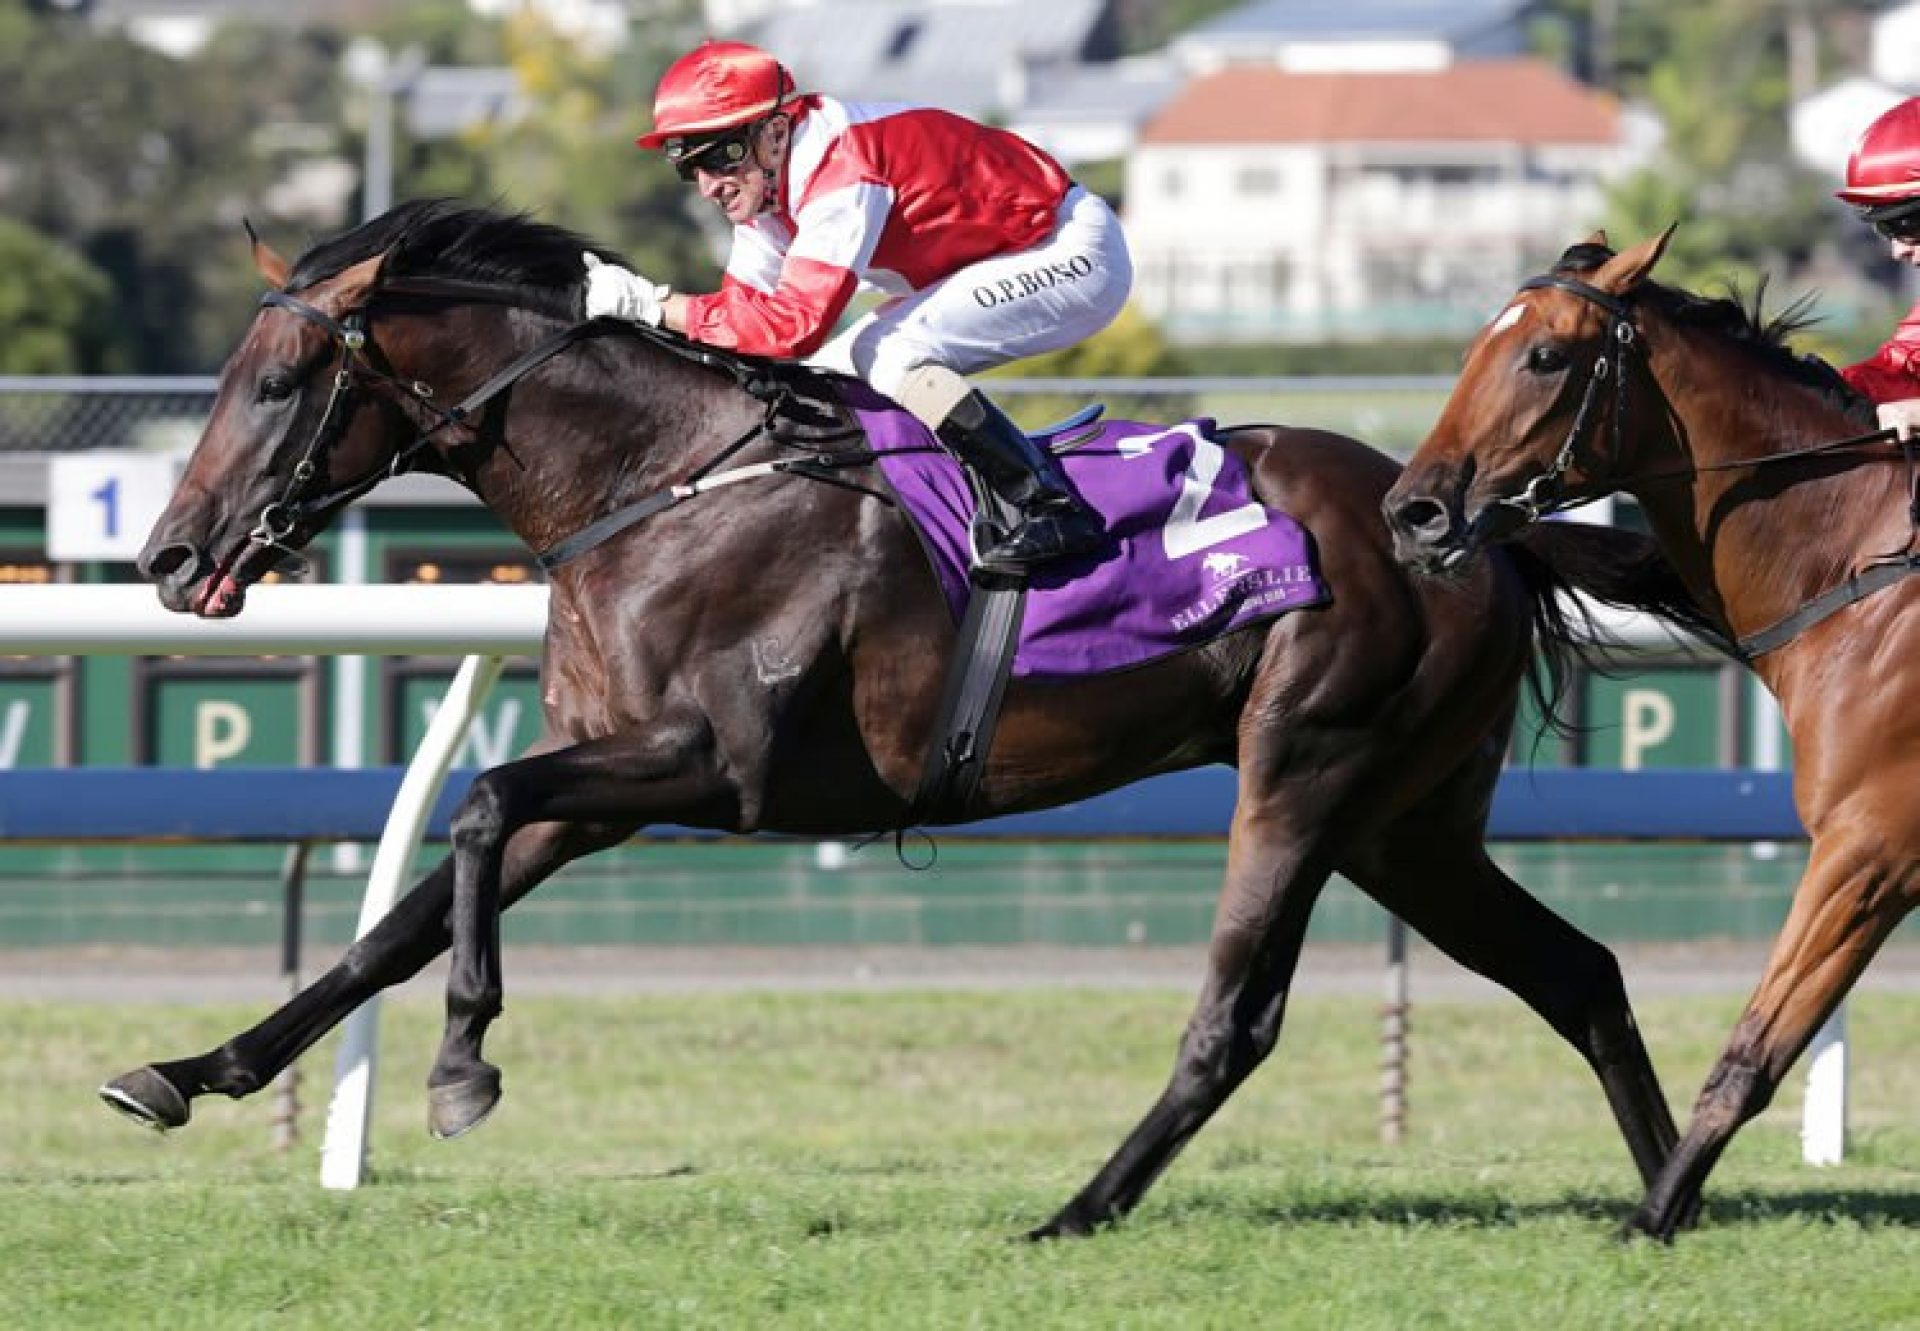 Mongolian Khan (Holy Roman Emperor) winning the G1 New Zealand Derby at Ellerslie